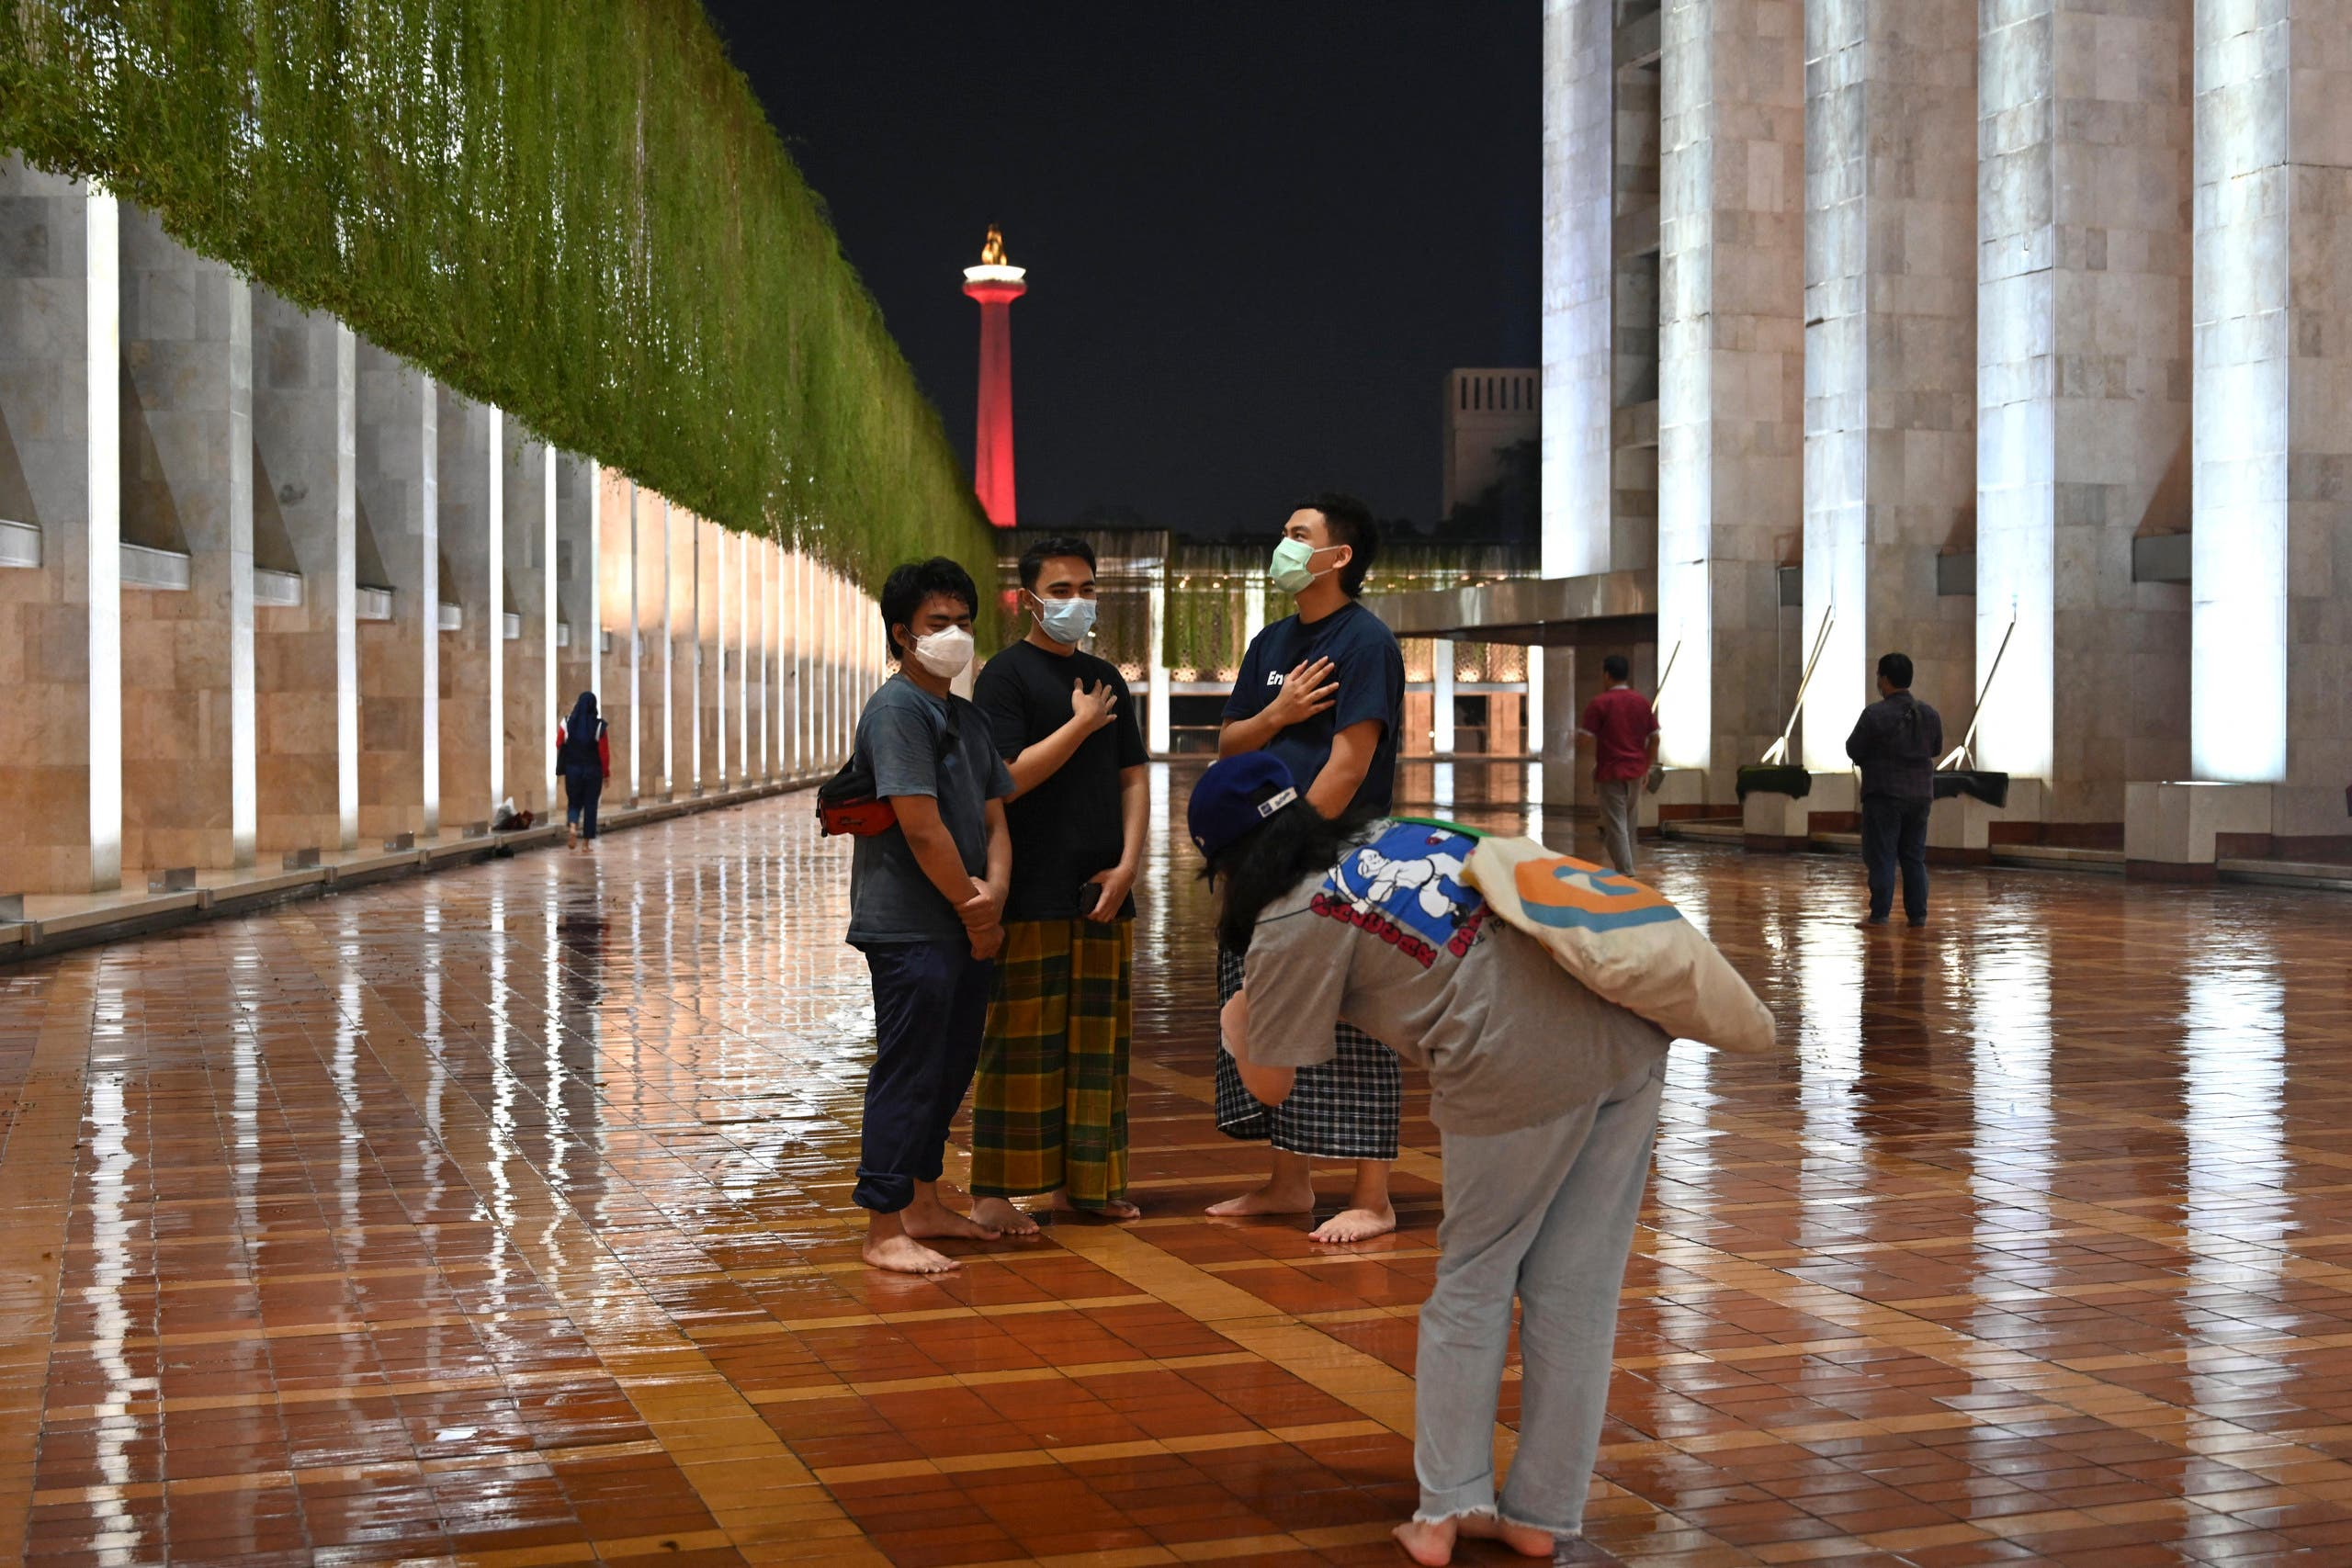 Muslim youths have their picture after prayers on the first night of Ramadan at the Istiqlal grand mosque in Jakarta on April 12, 2021. (File photo: AFP)